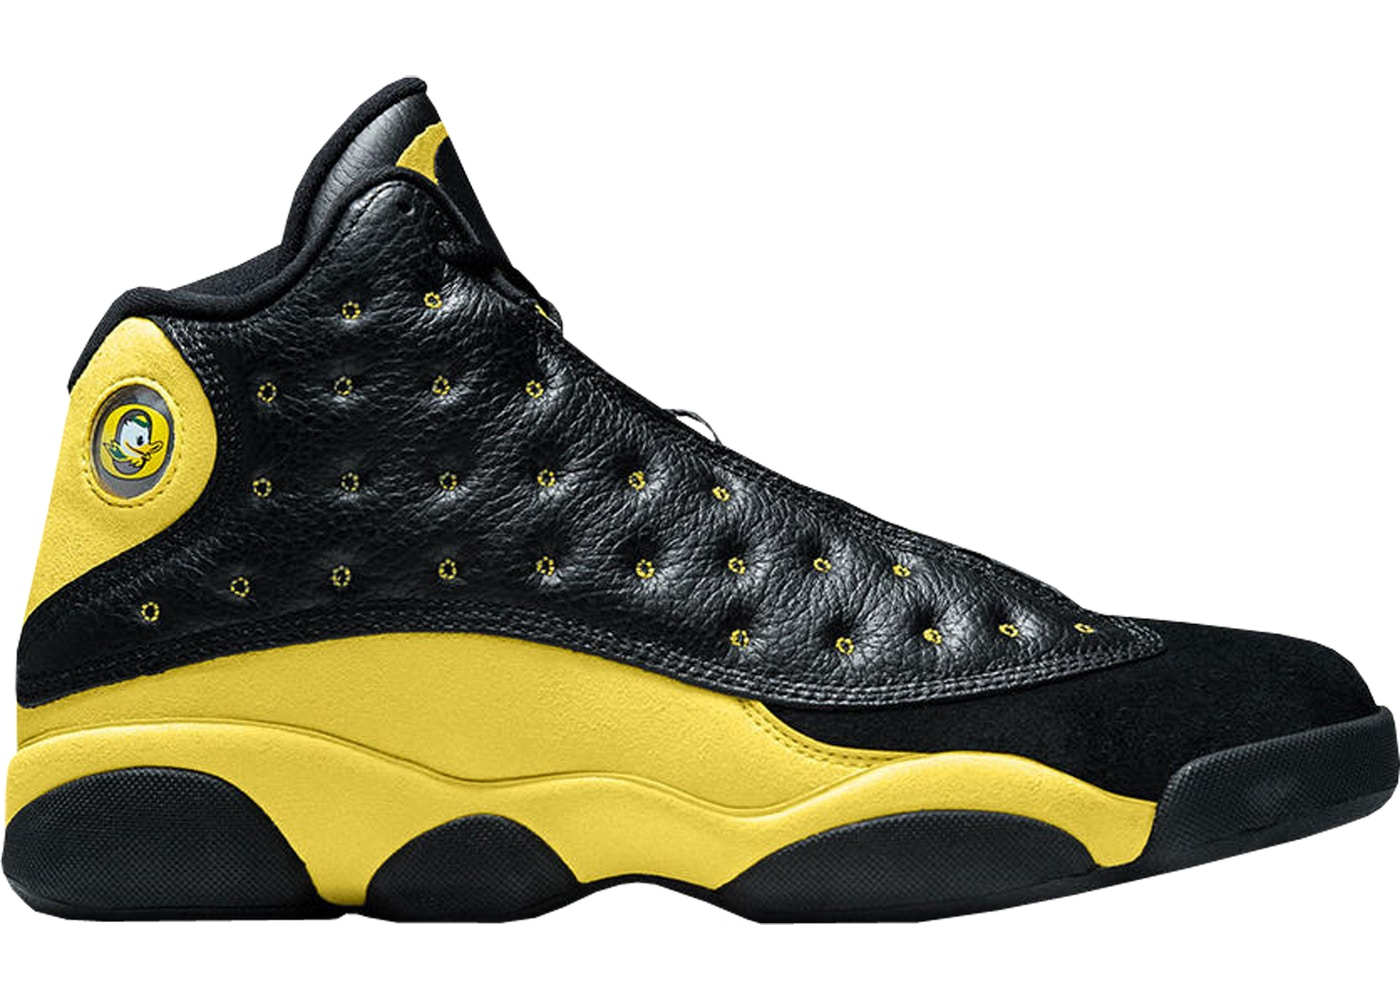 superior quality 7ae74 1908b Air Jordan 13 Size 16 Shoes - Release Date